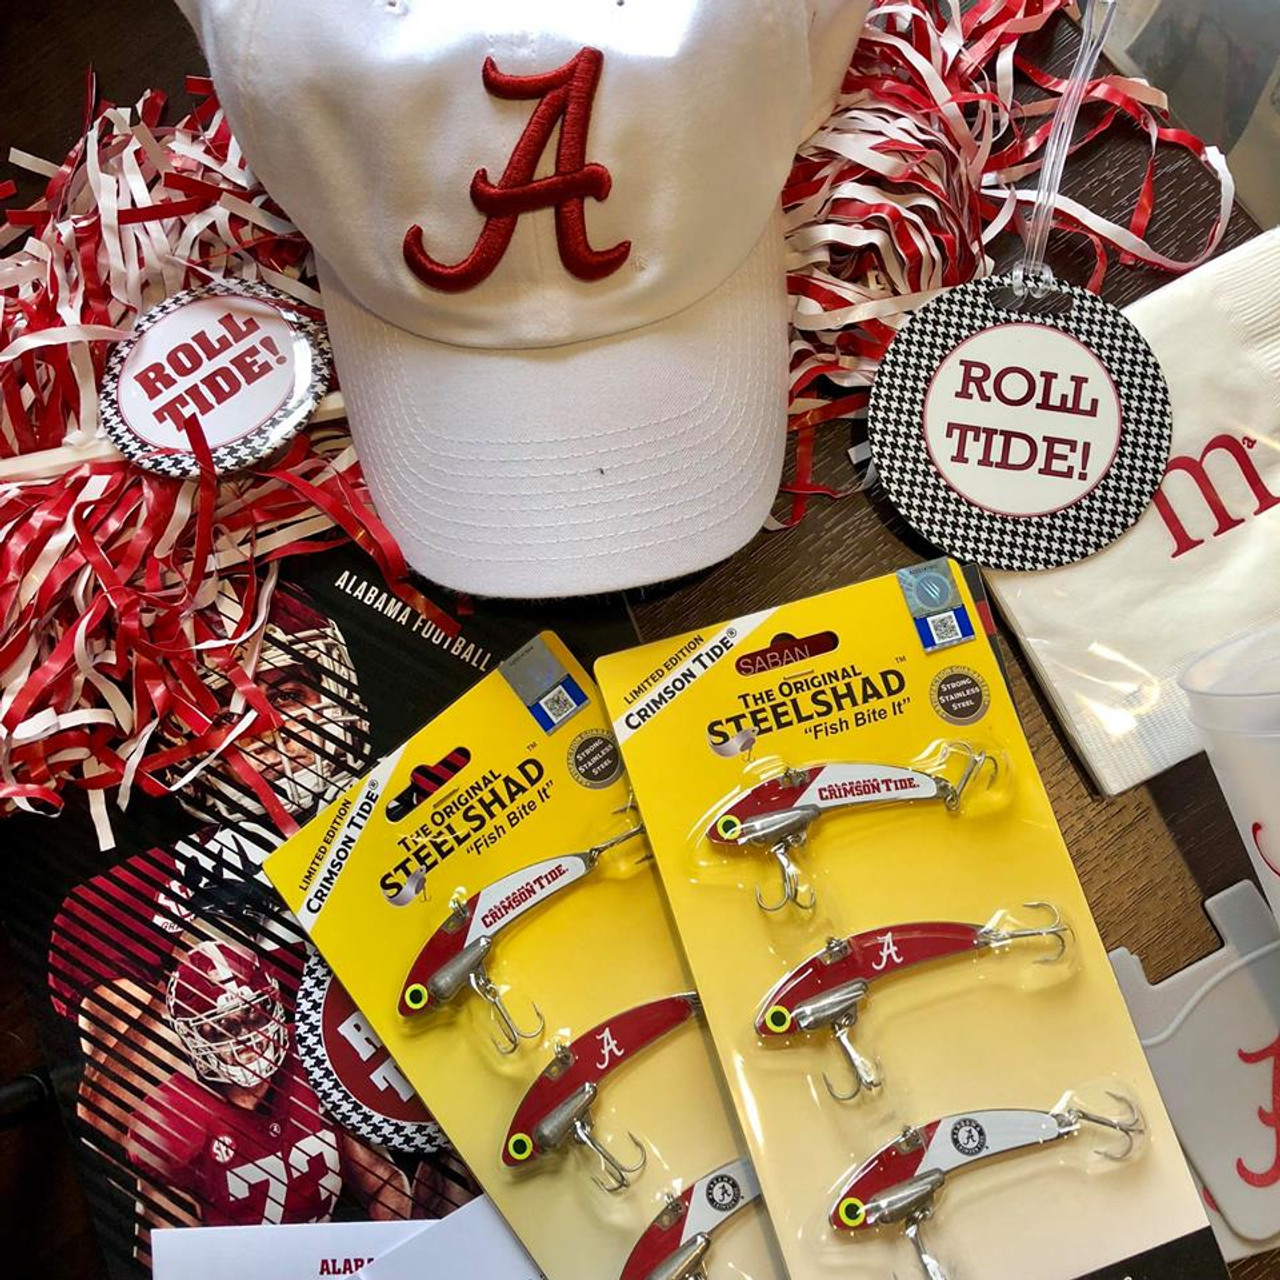 SteelShad University of Alabama 3 Pack